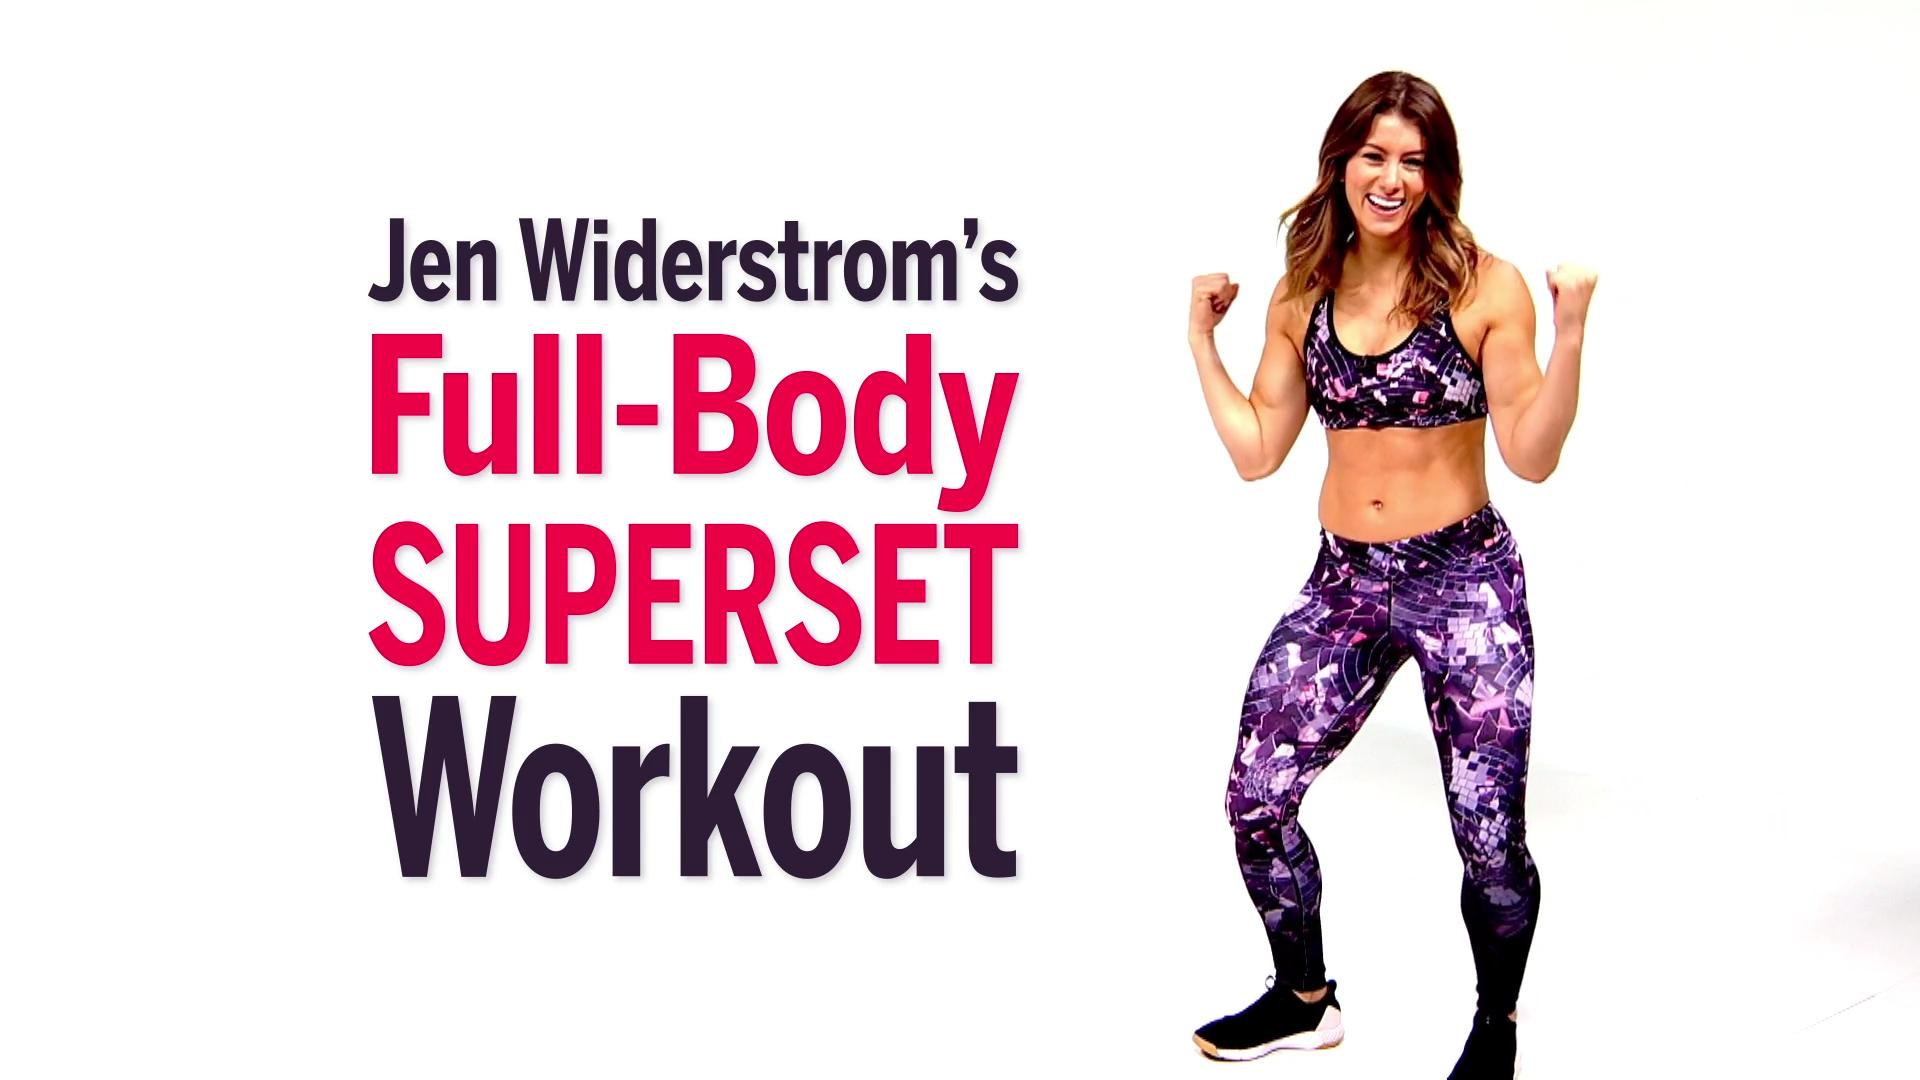 Jen Widerstrom's Superset Workout Fast-Tracks Your Toning Goals